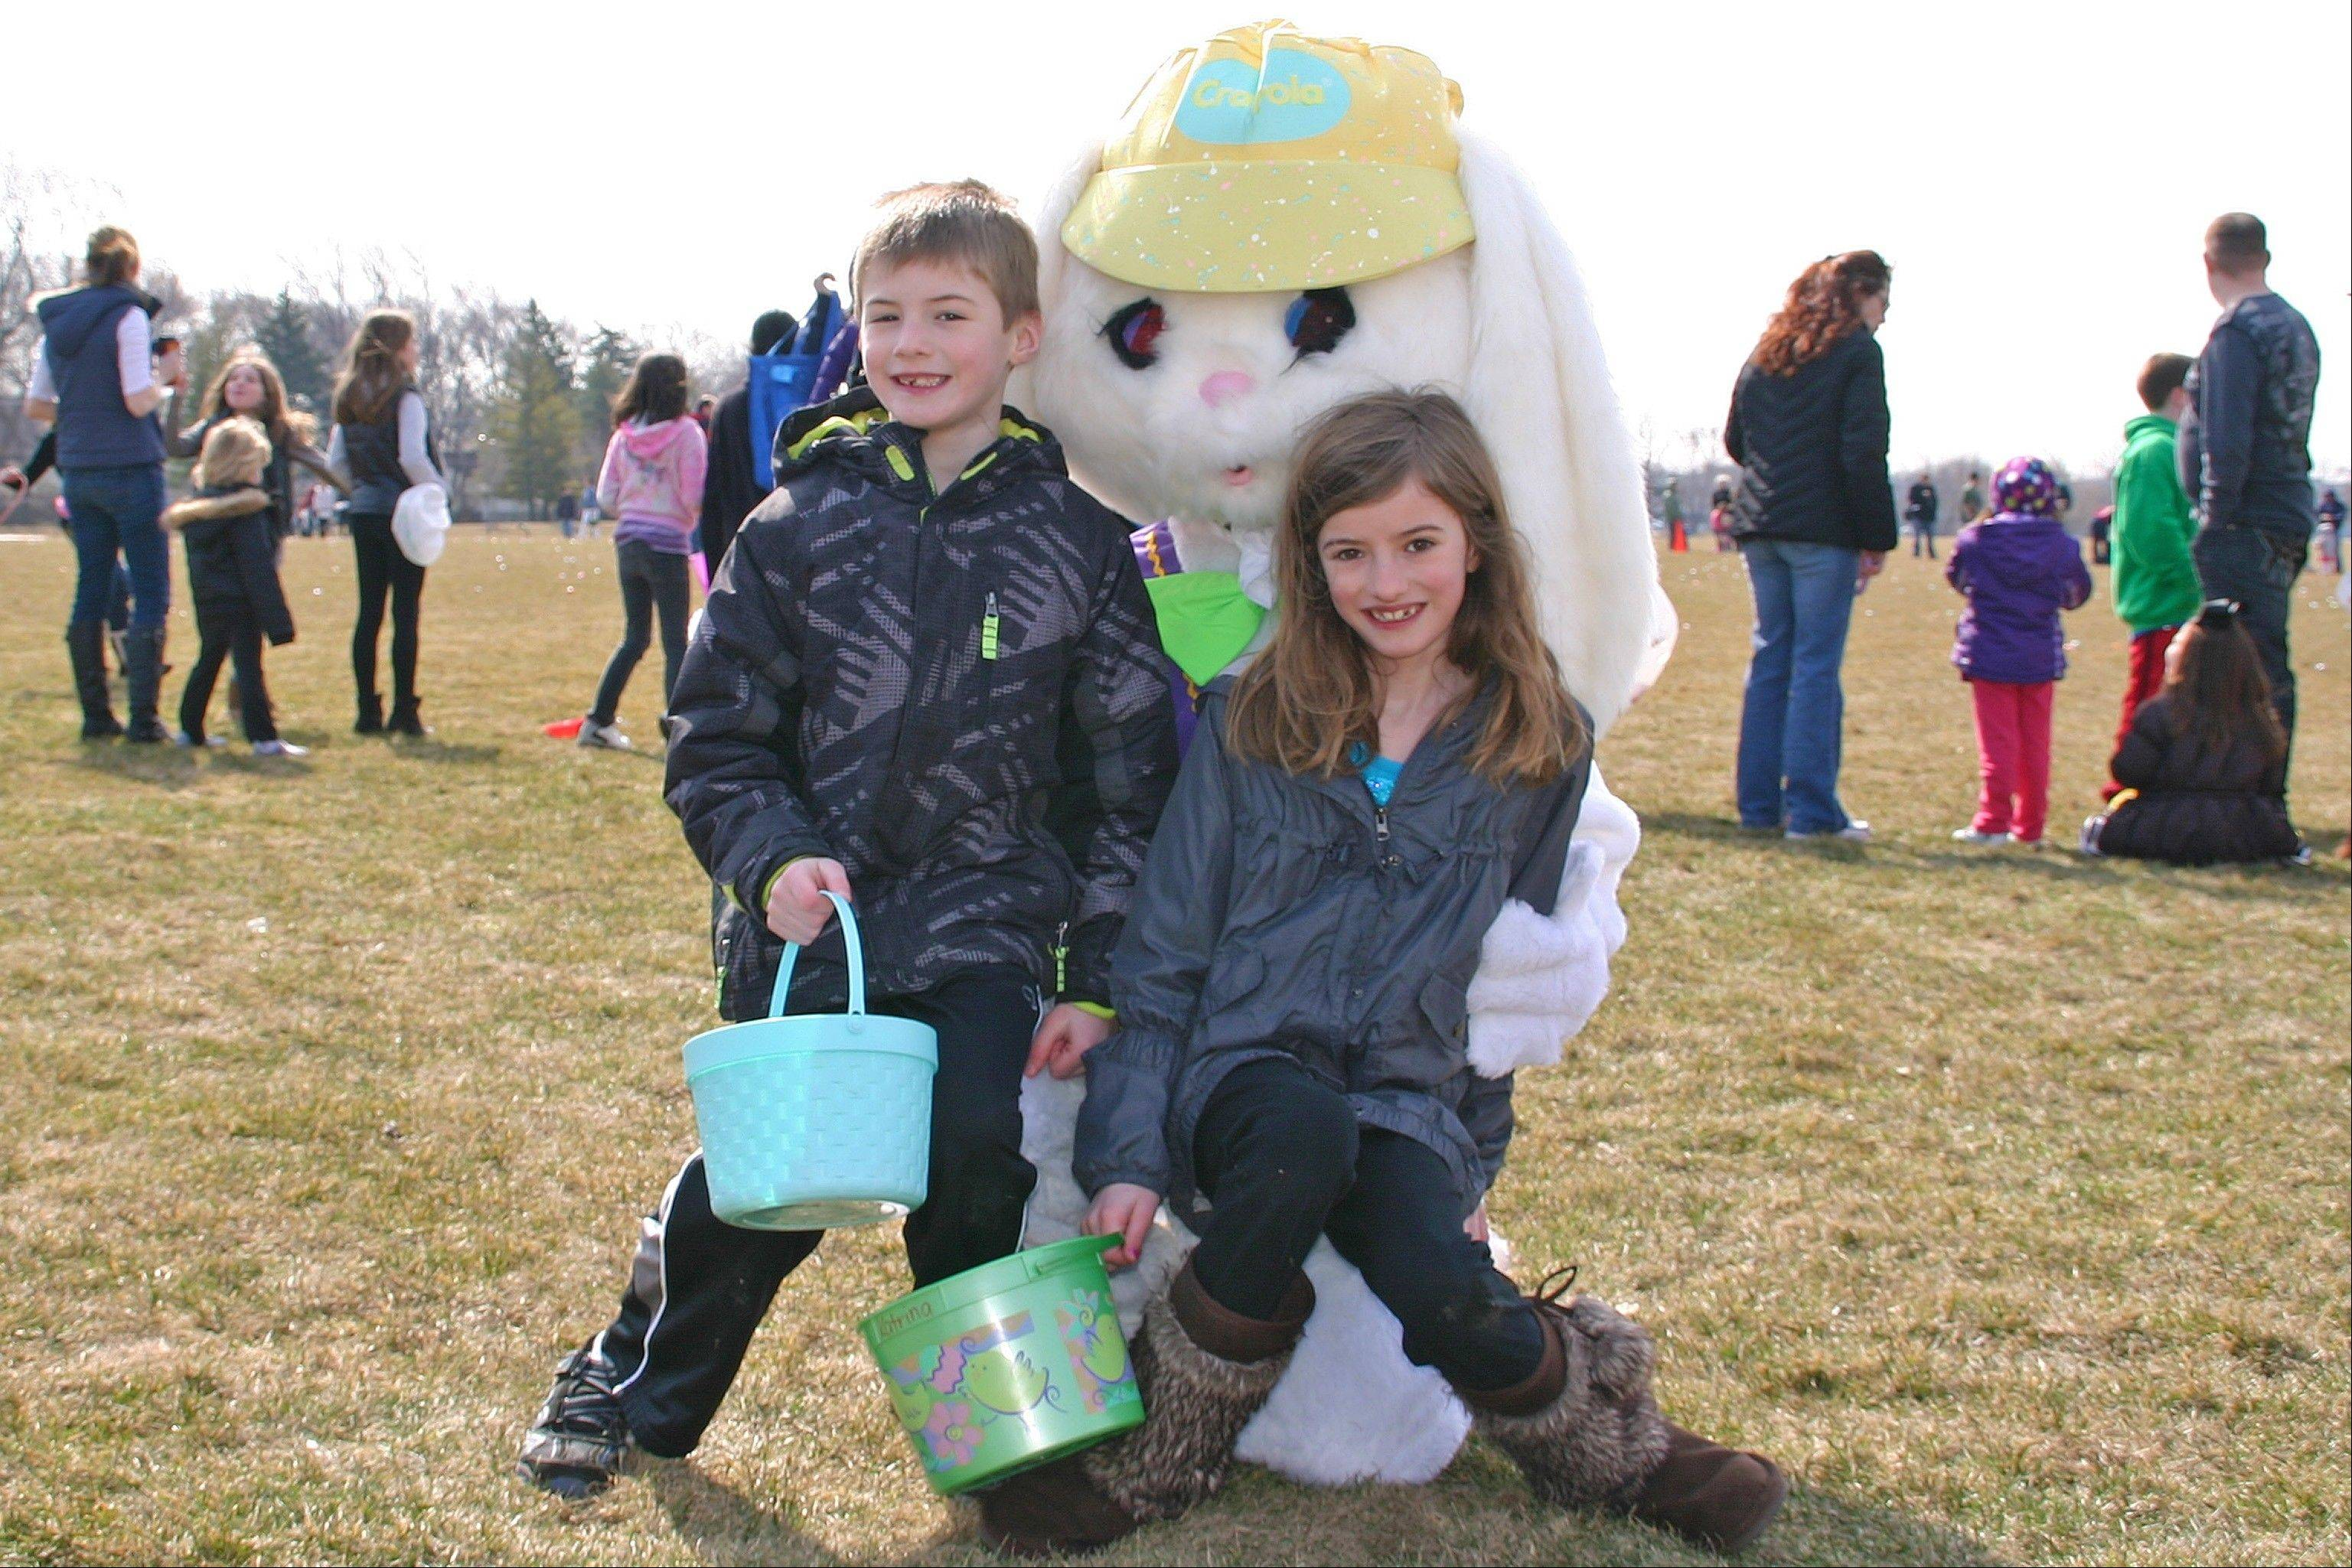 Ian and Katrina Miletic visit with the Easter Bunny at the annual Des Plaines Park District free Easter egg hunt Saturday, March 30, at Prairie Lake Park.